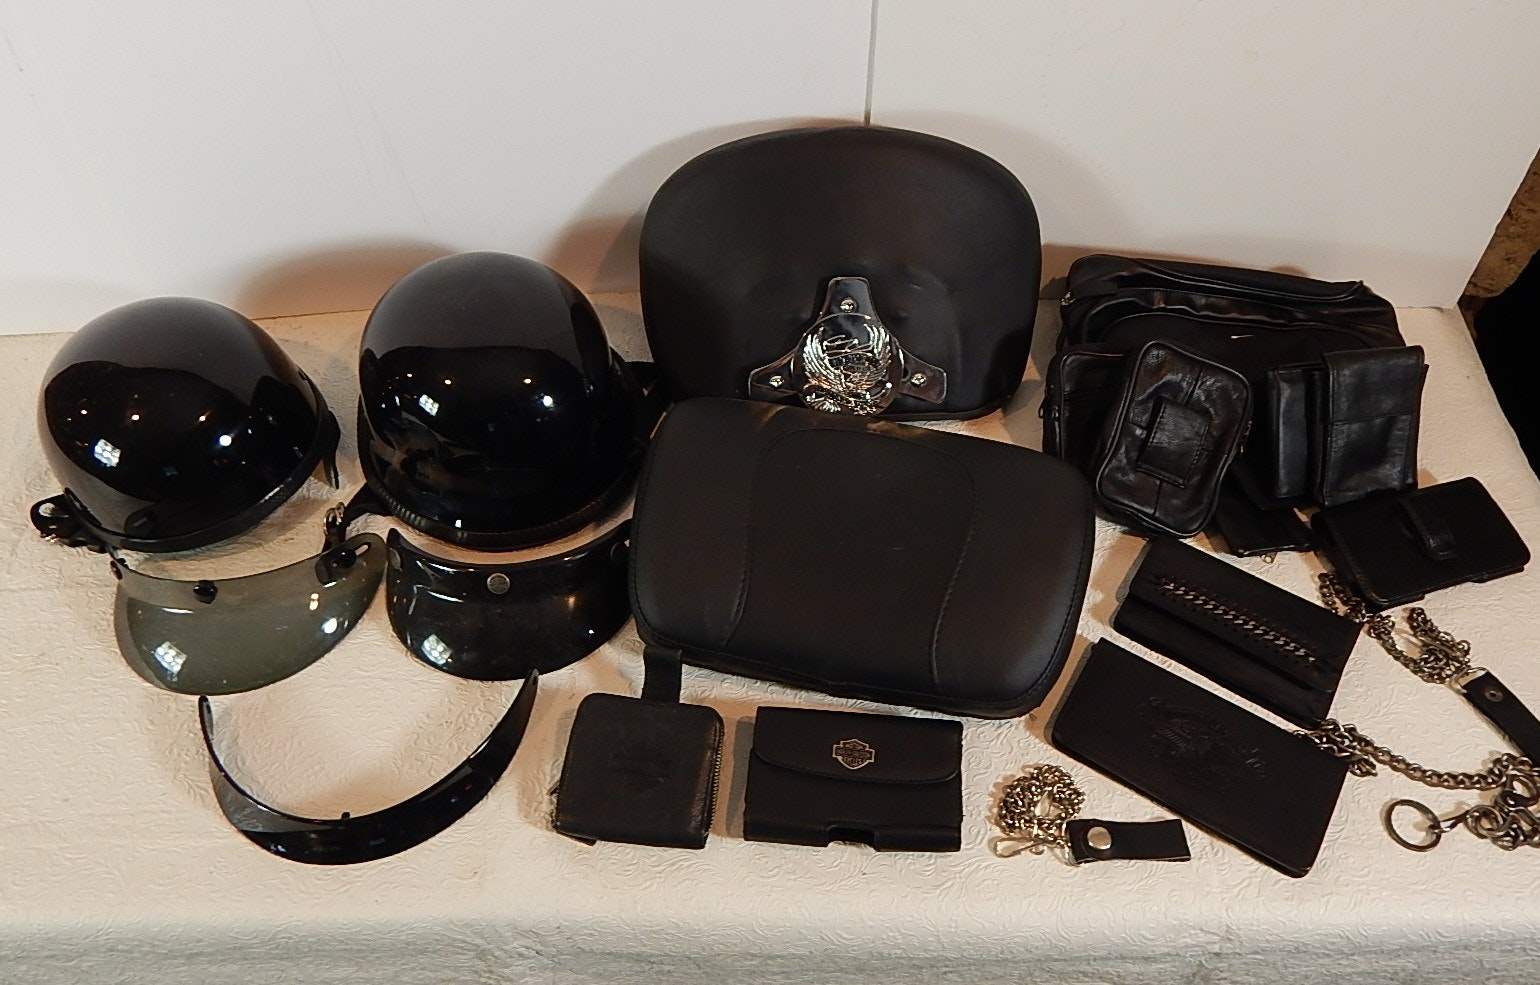 Motorcycle Items with Harley-Davidson, Helmets, Leather Wallets, and More